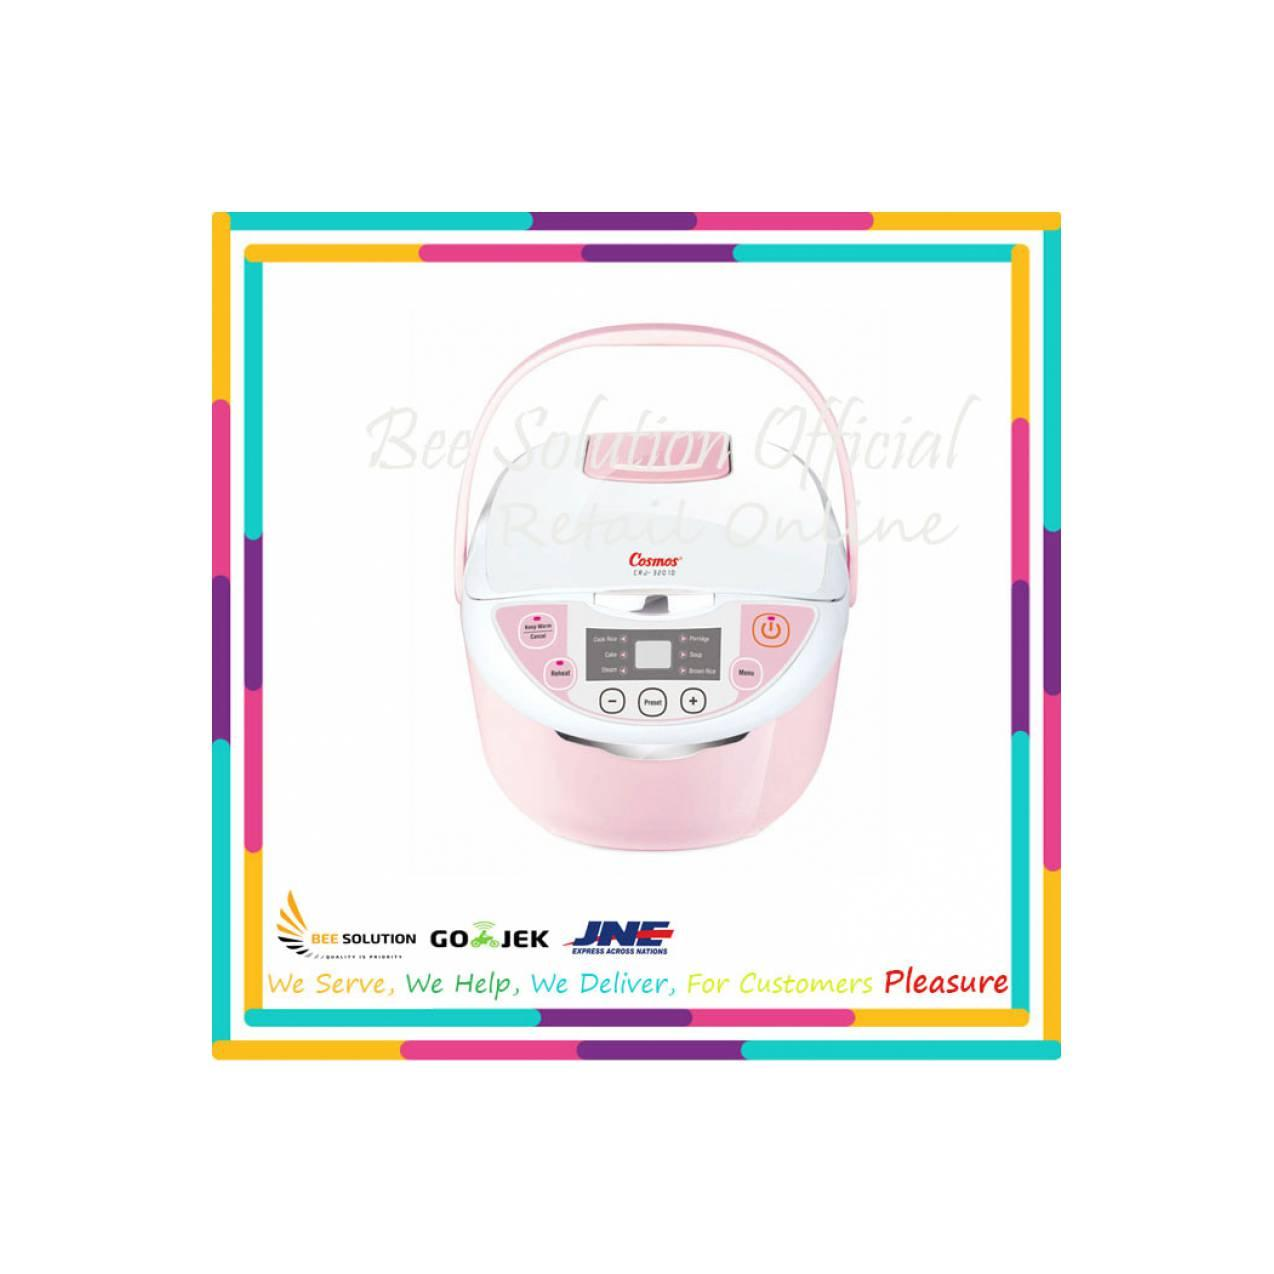 Cosmos Rice Cooker CRJ 3201D / CRJ3201D - Pink - Bubble Wrap